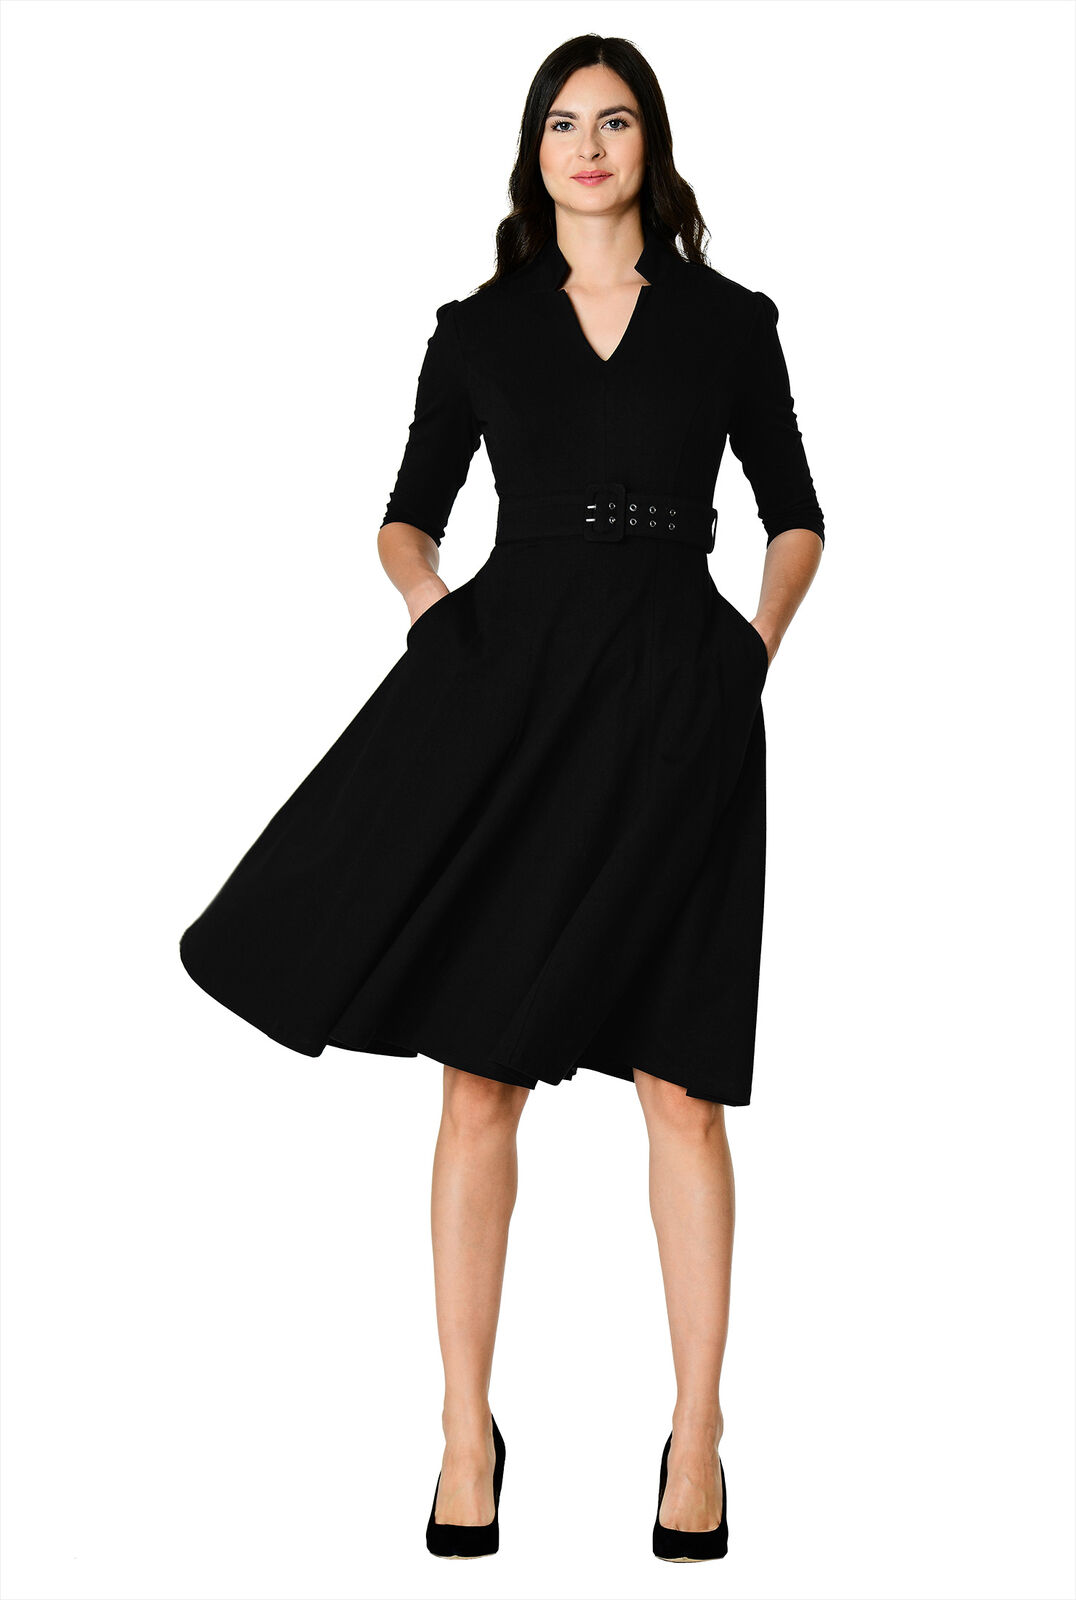 Faible V-Neck Formal mariage Bridesmaid Long Evening Party courte Cocktail Drees